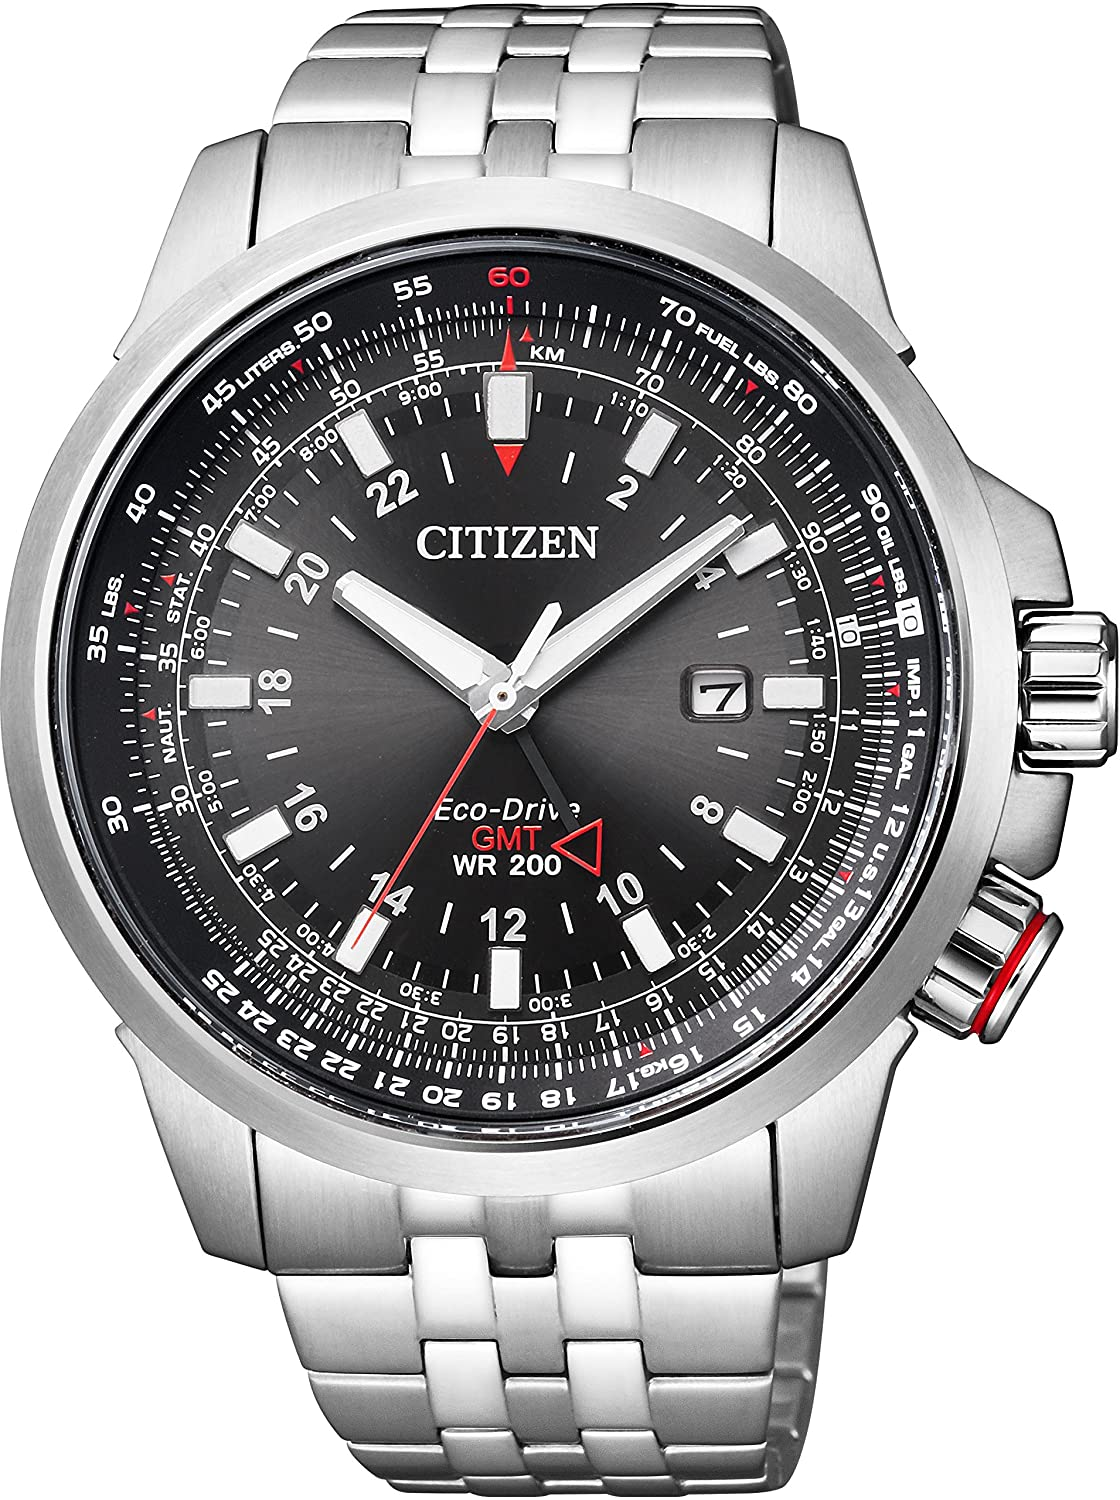 216be5aa0263 Amazon.com  Citizen Promaster Global Sky Eco-Drive World Time Pilot  Multi-Function Model Men Watch BJ7071-54E  Watches